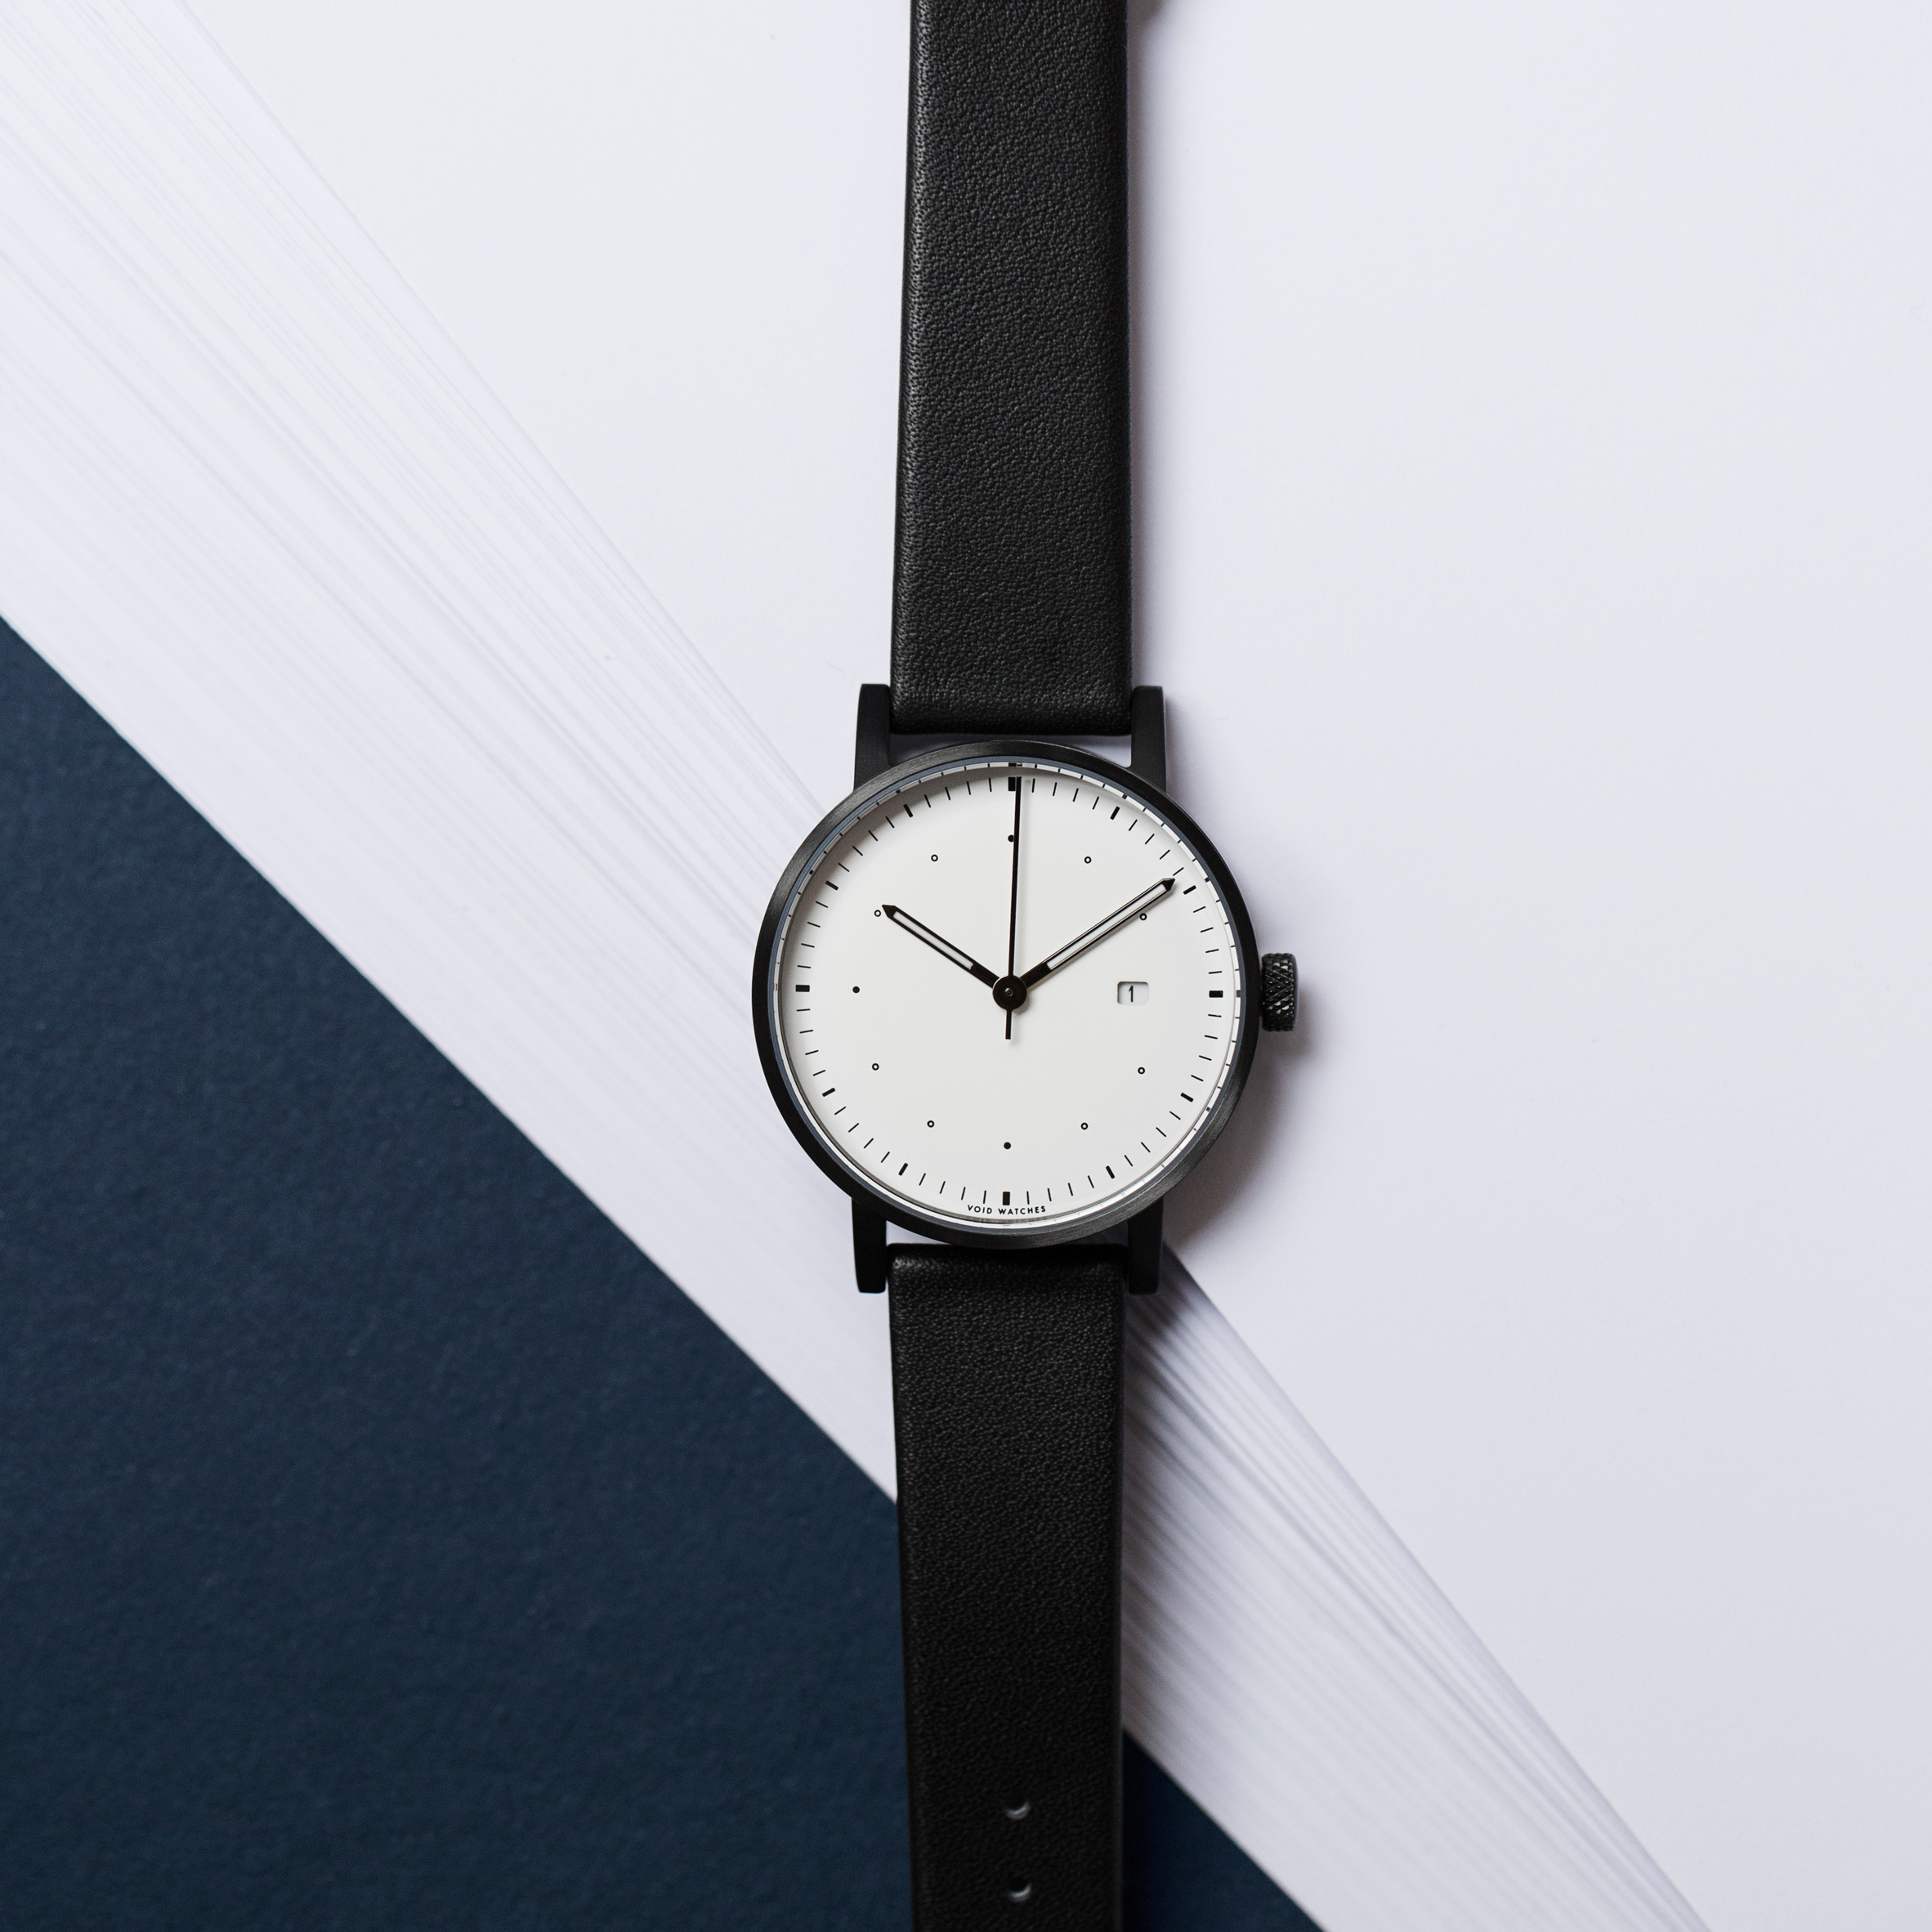 watches design watch leather black adexe angle petite designer classic white meek strap products from new